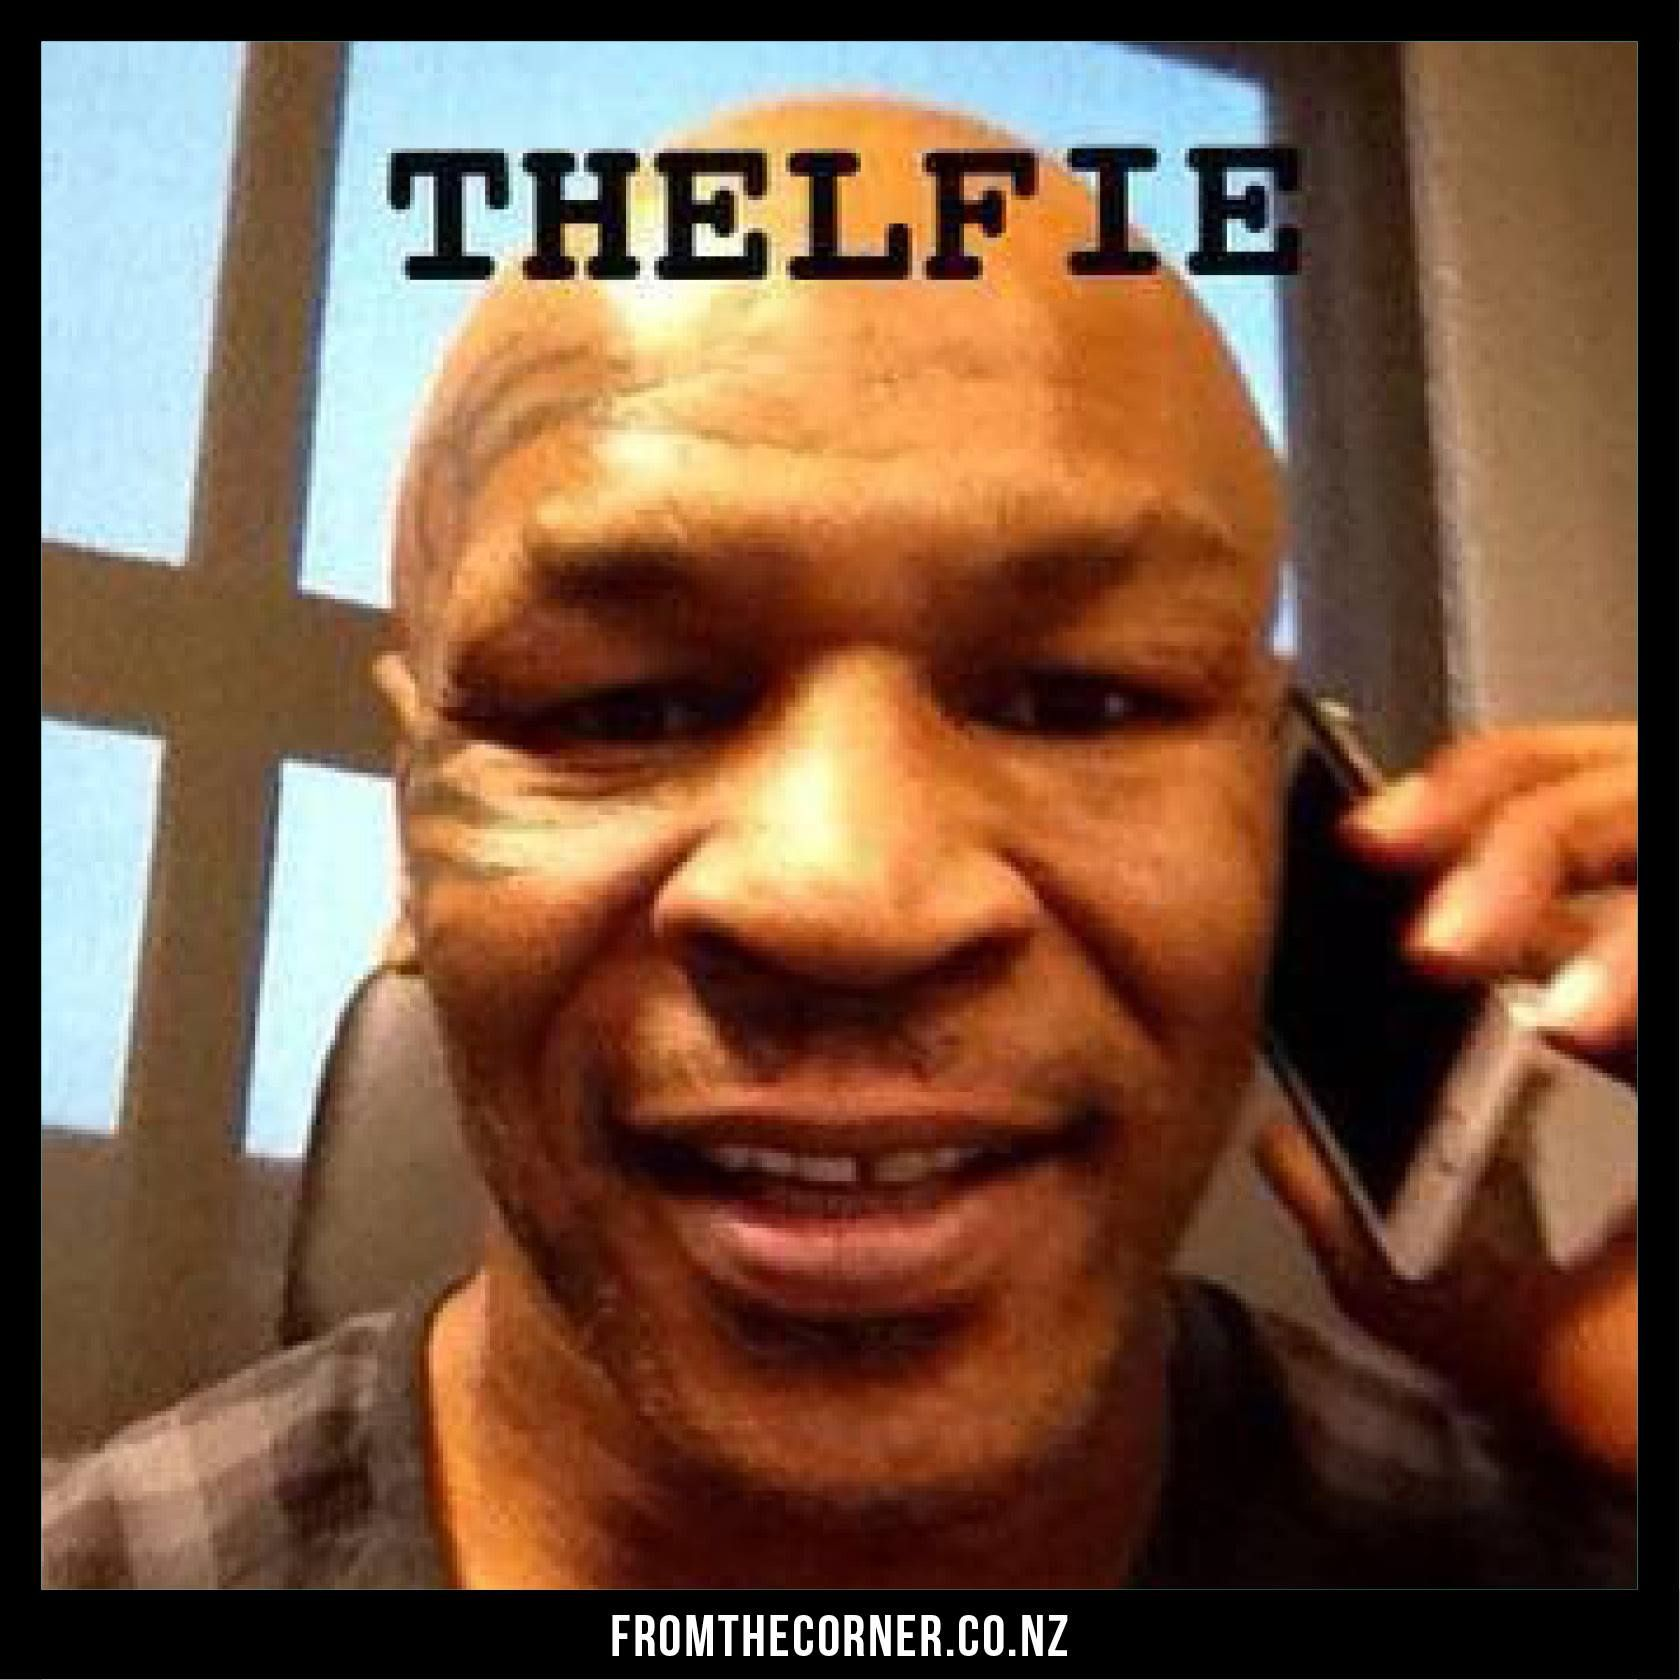 Tyson Methed Up: Selfie From Mike Tyson, Funny Pic From The Boxing Legend